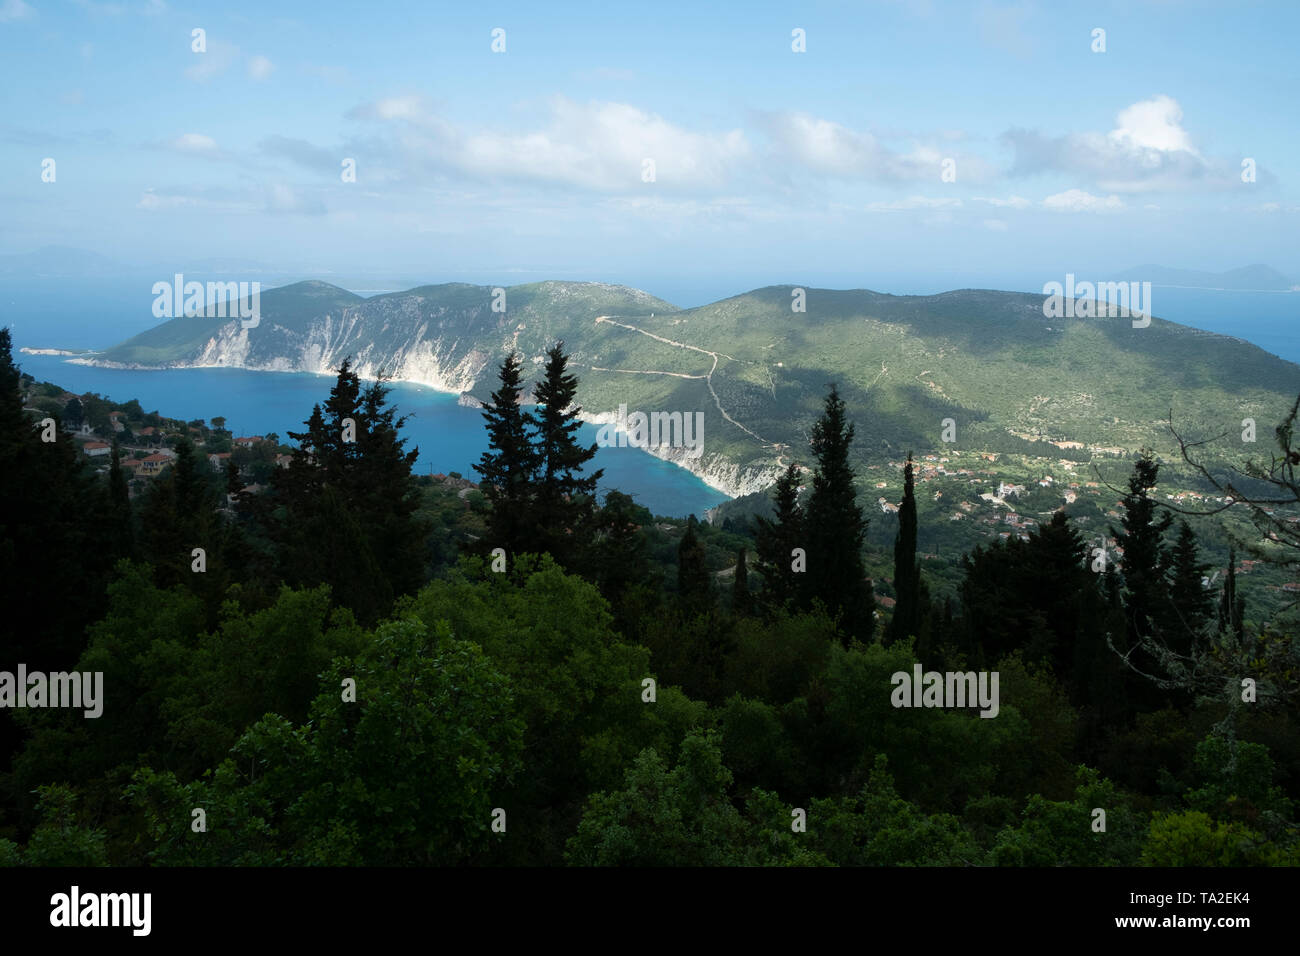 Views around Exogi, Ithaca, Greece. Ithaca, Ithaki or Ithaka is a Greek island located in the Ionian Sea to the west of continental Greece. Ithacas main island has an area of 96 square kilometres. It is the second-smallest of seven main Ionian Islands. - Stock Image